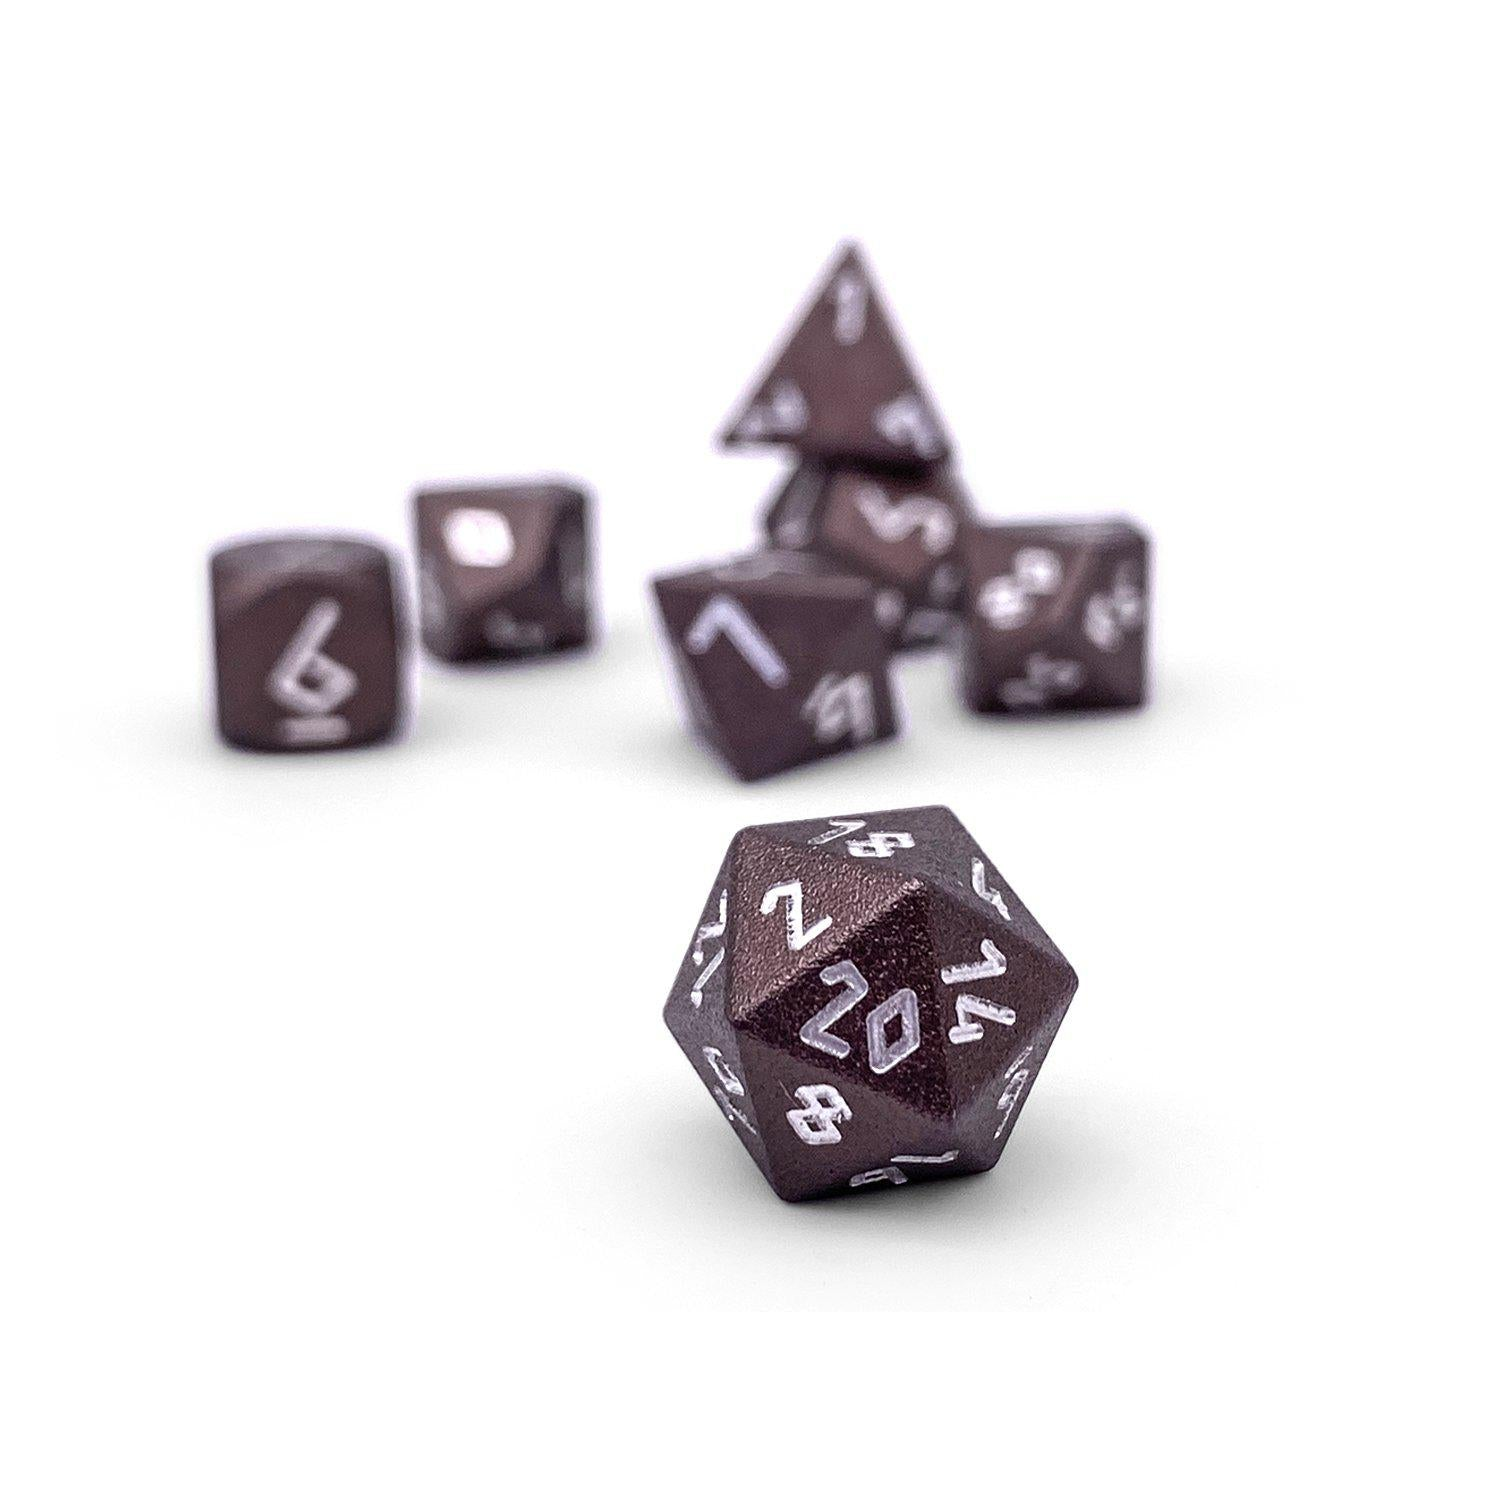 Leather Brown Pebble ™ Dice - 10mm 6063 Aircraft Grade Aluminum Mini